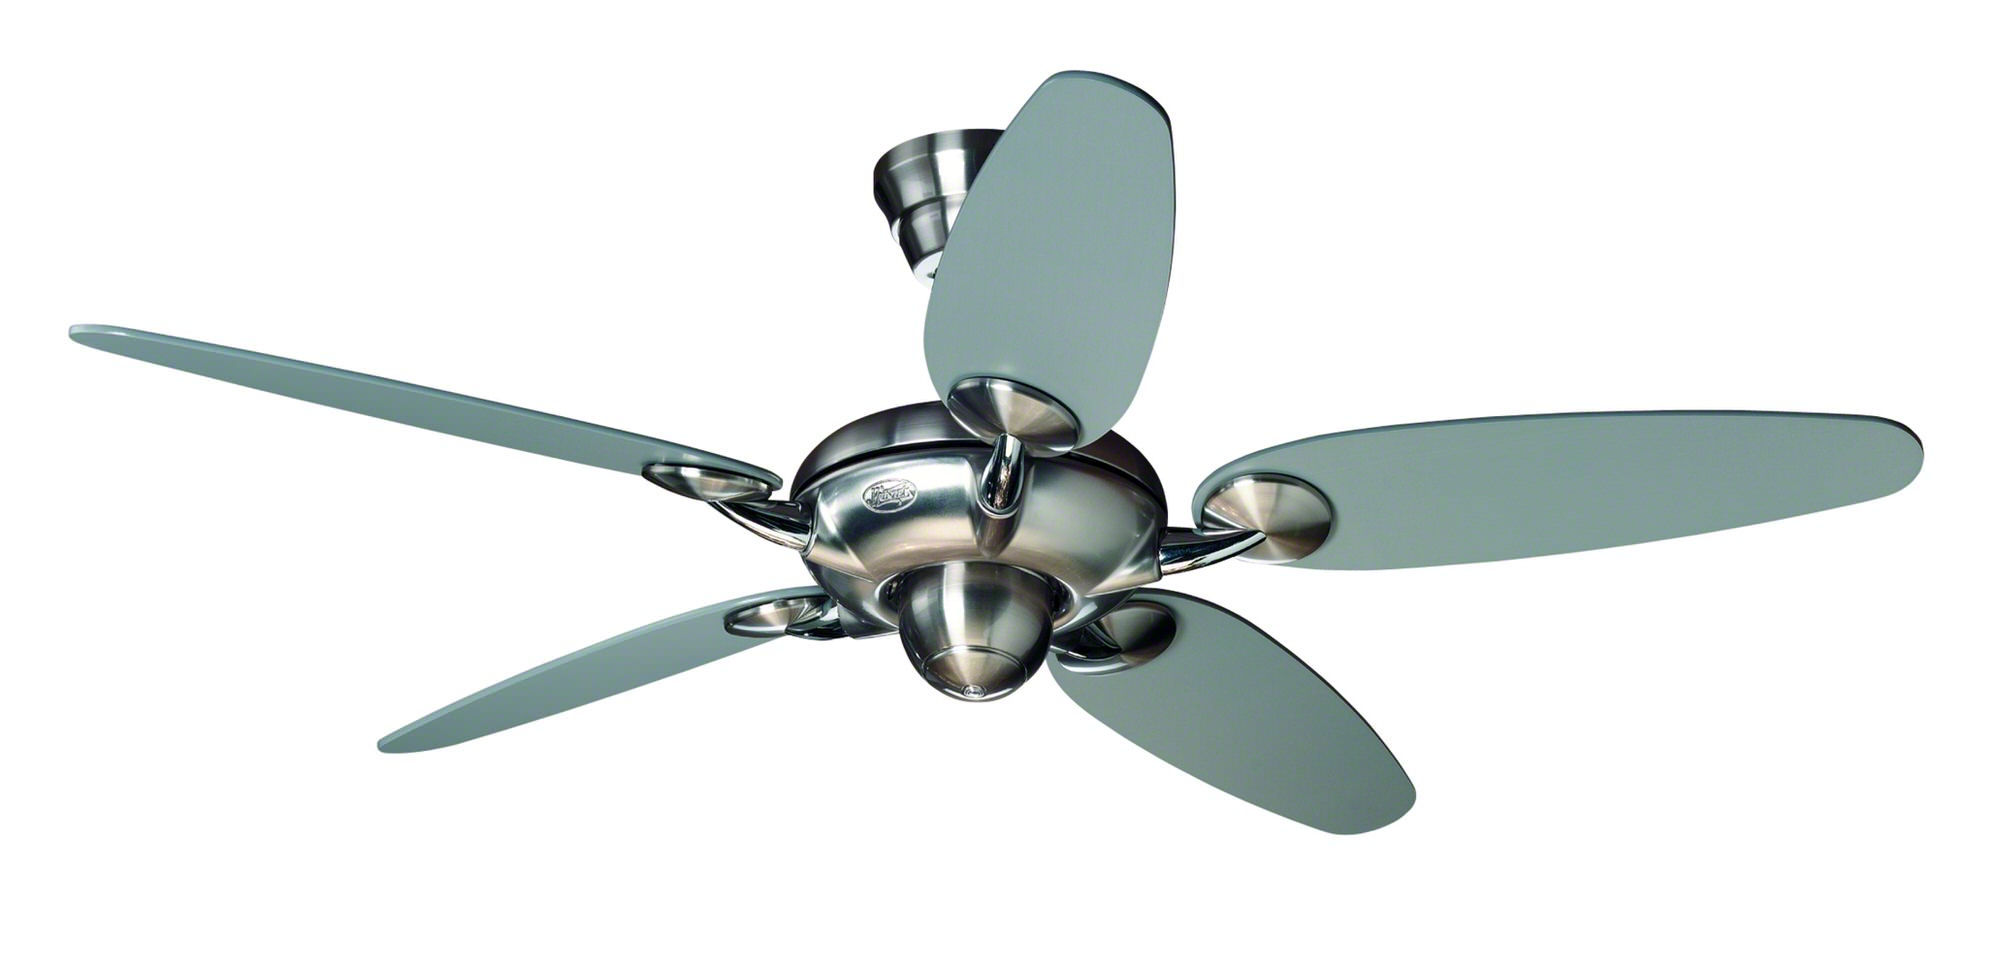 Hunter alchemy ceiling fan - Pictures of ceiling fans ...